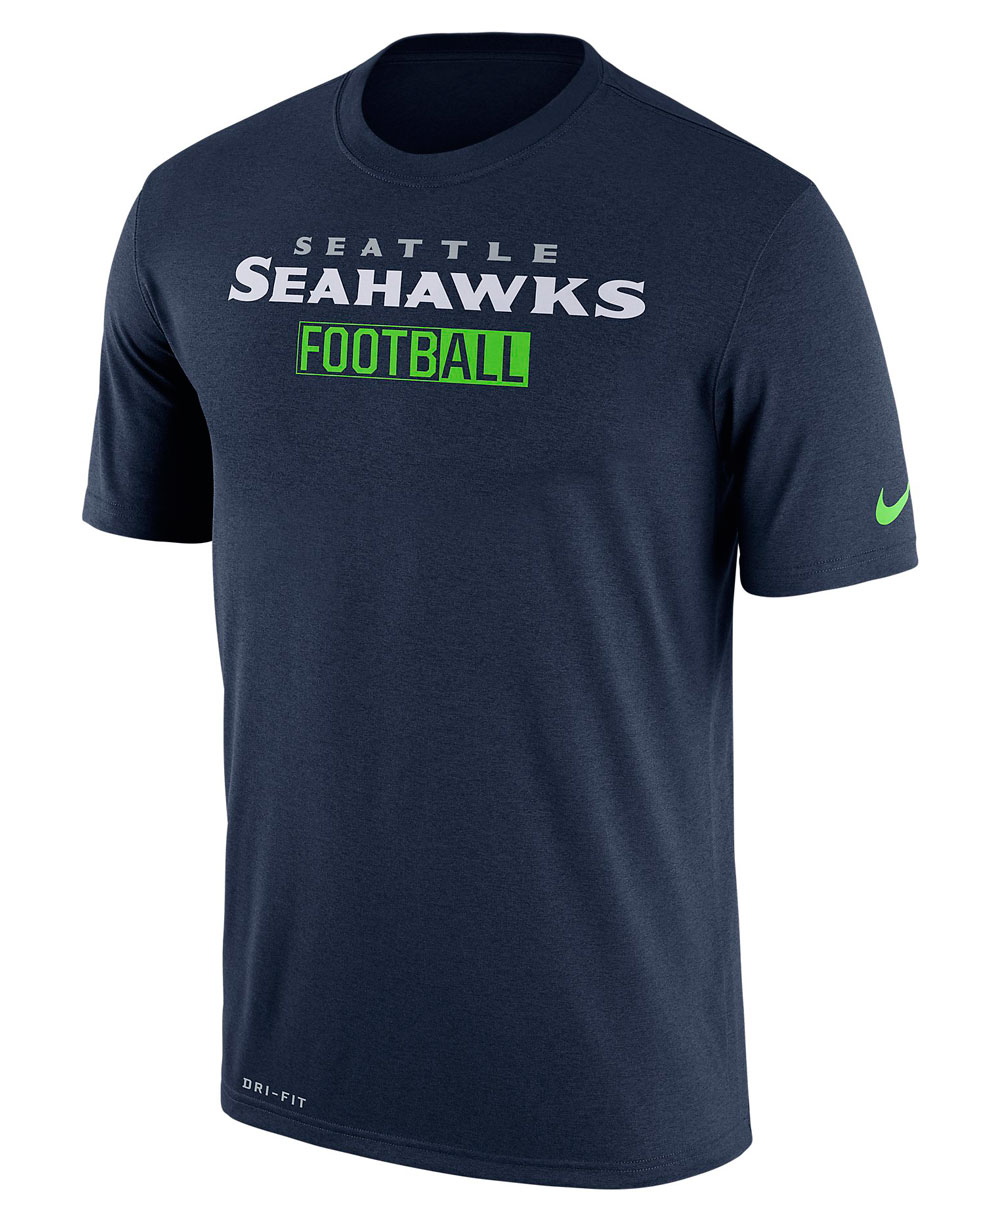 Legend All Football T-Shirt Uomo NFL Seahawks